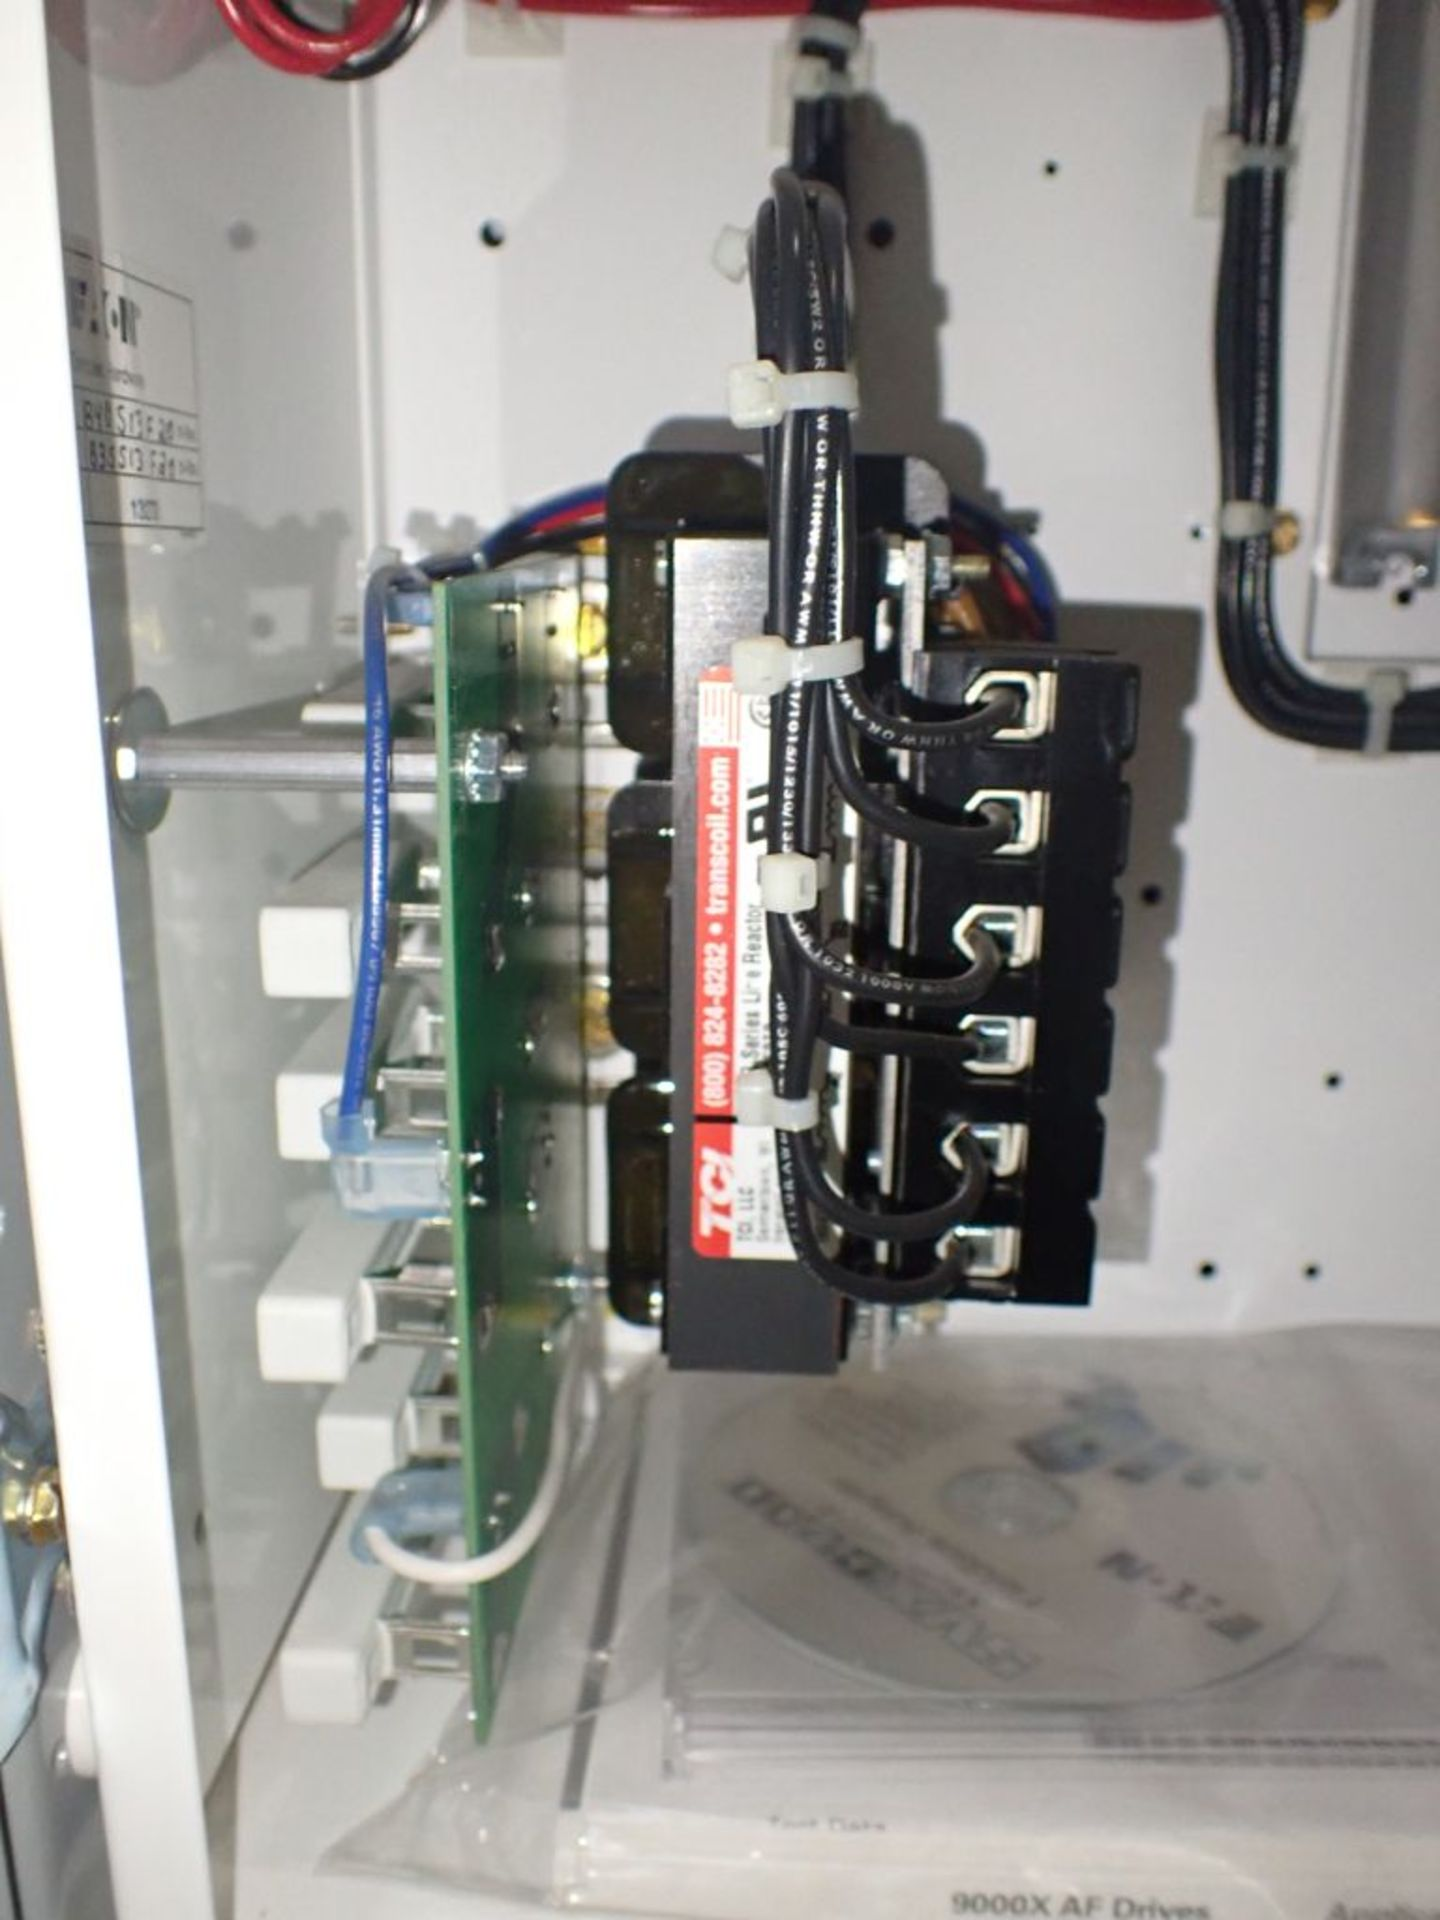 Eaton Freedom 2100 Series Motor Control Center | (2) F206-7A-10HP; (3) F206-15A-10HP; (1) FDRB-100A; - Image 22 of 87